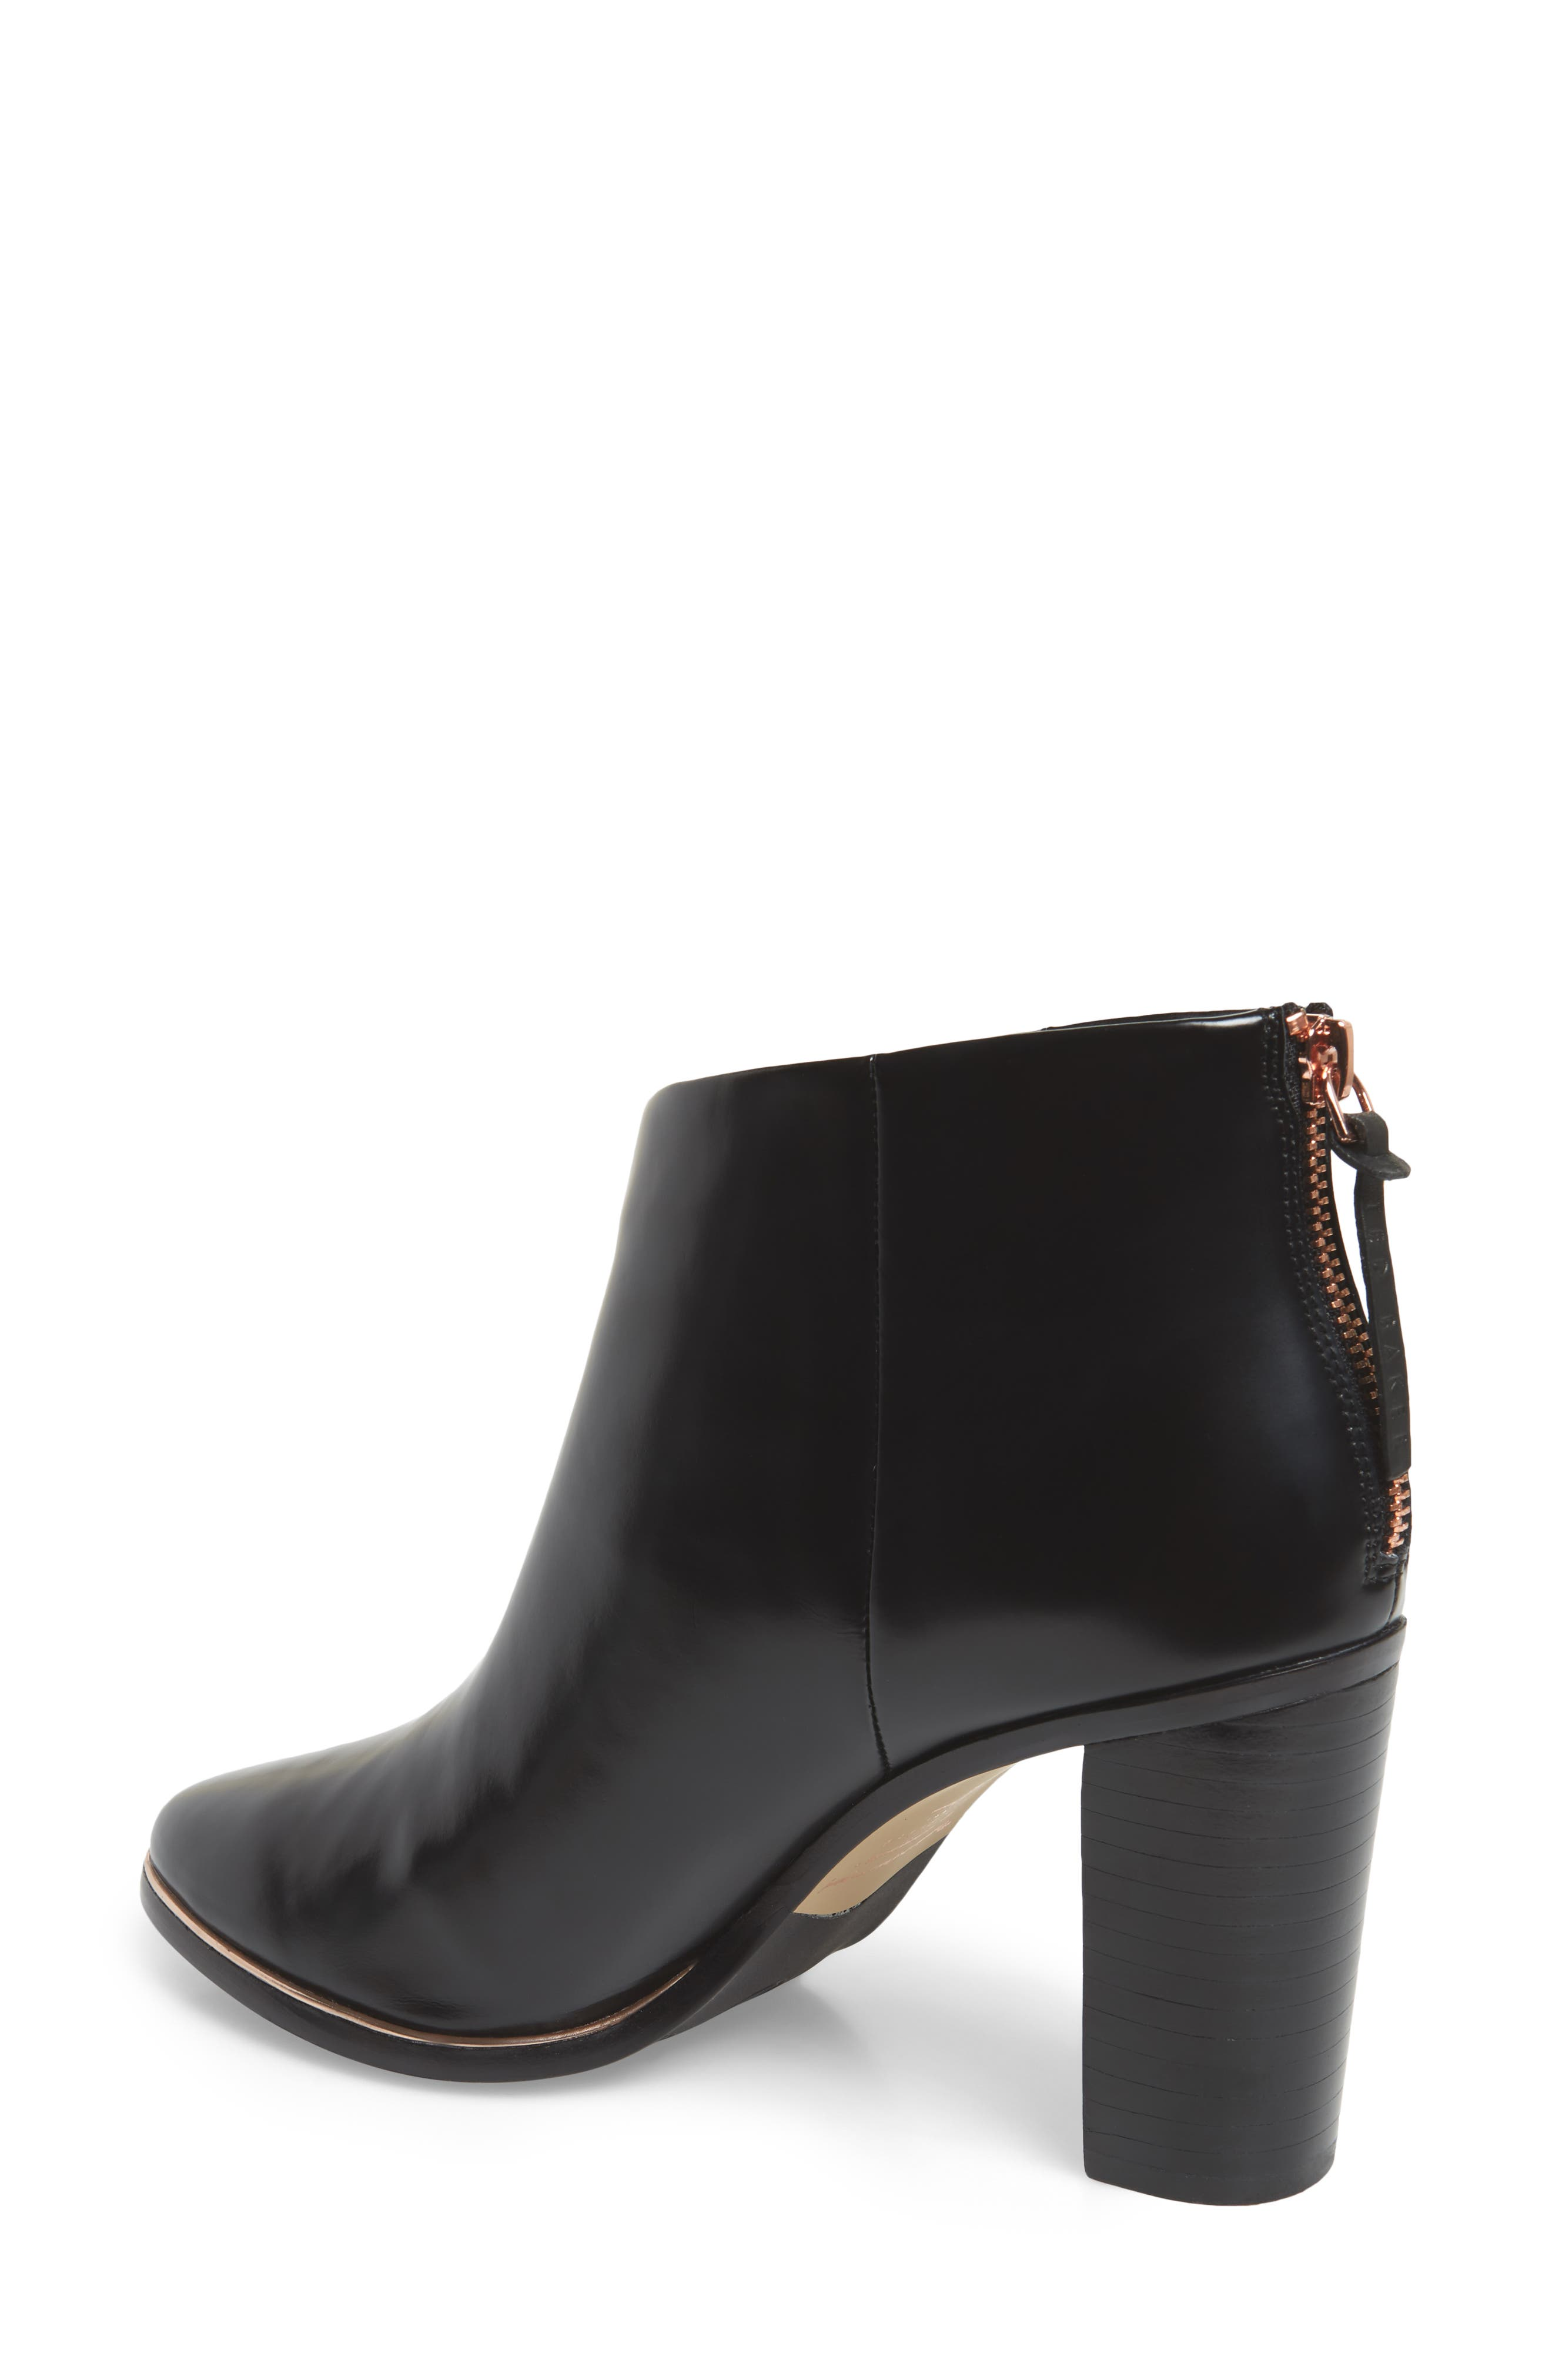 Vaully Bootie,                             Alternate thumbnail 2, color,                             BLACK LEATHER